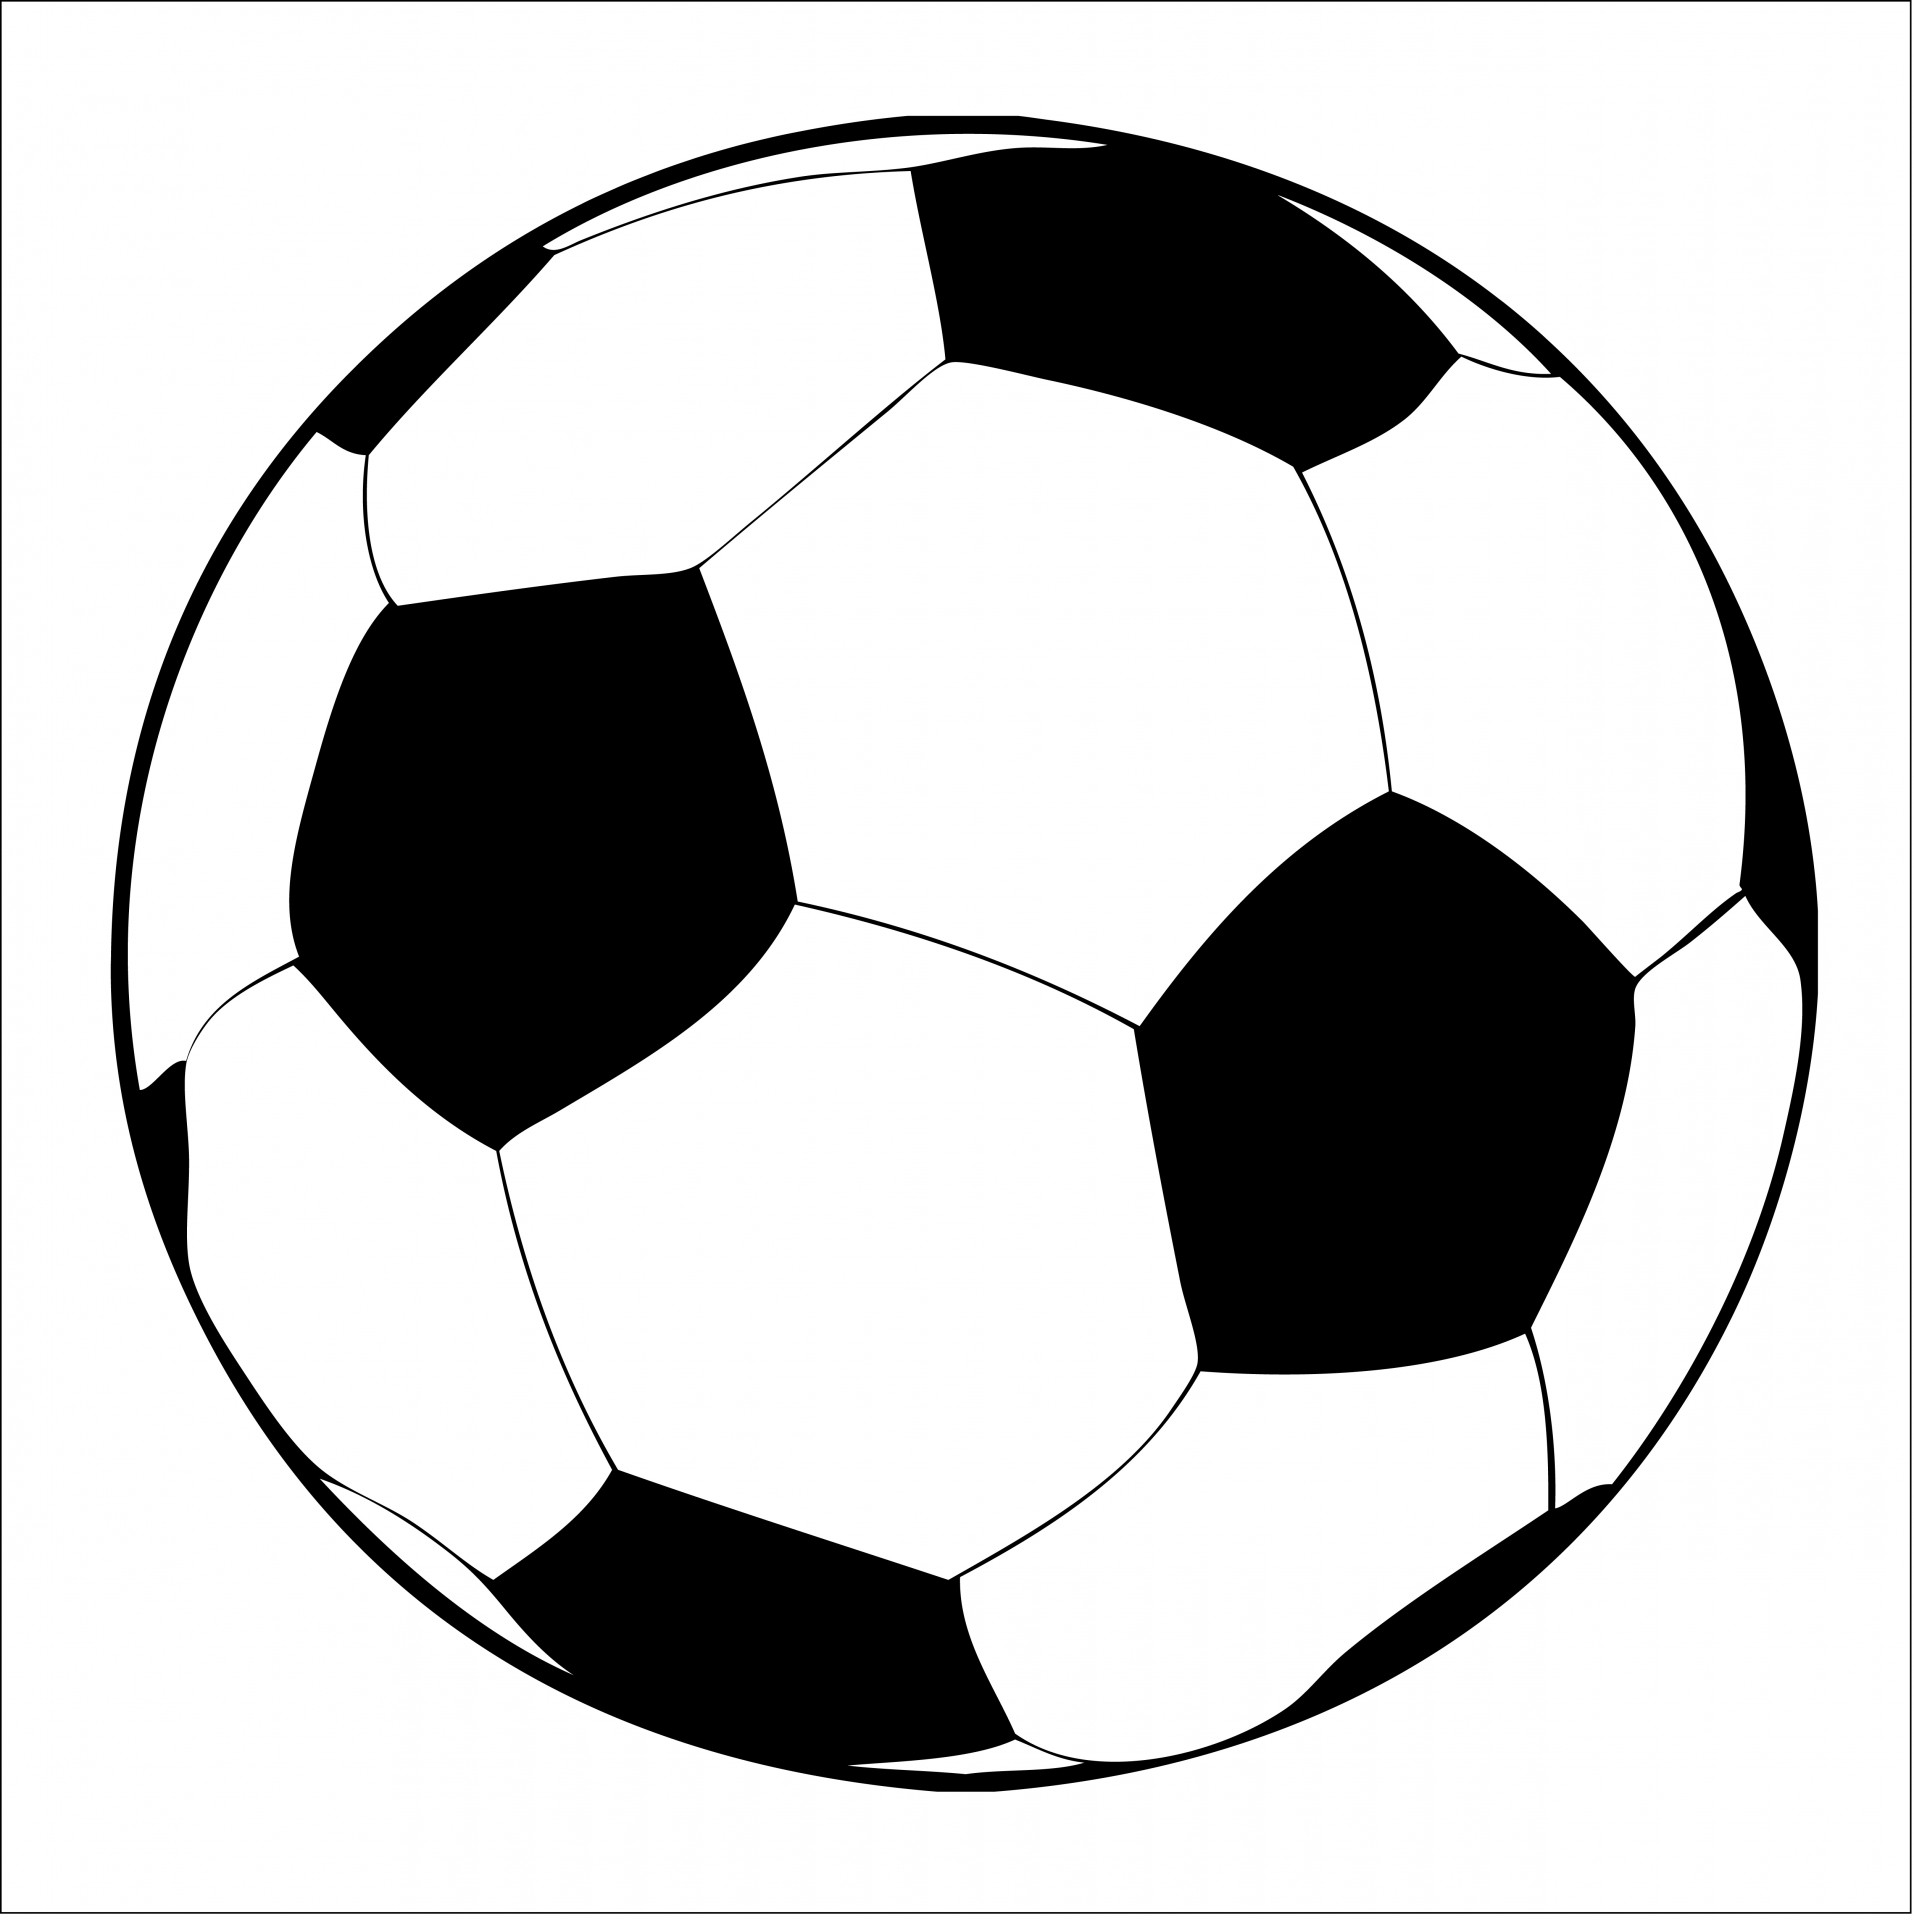 Ball clipart #4, Download drawings